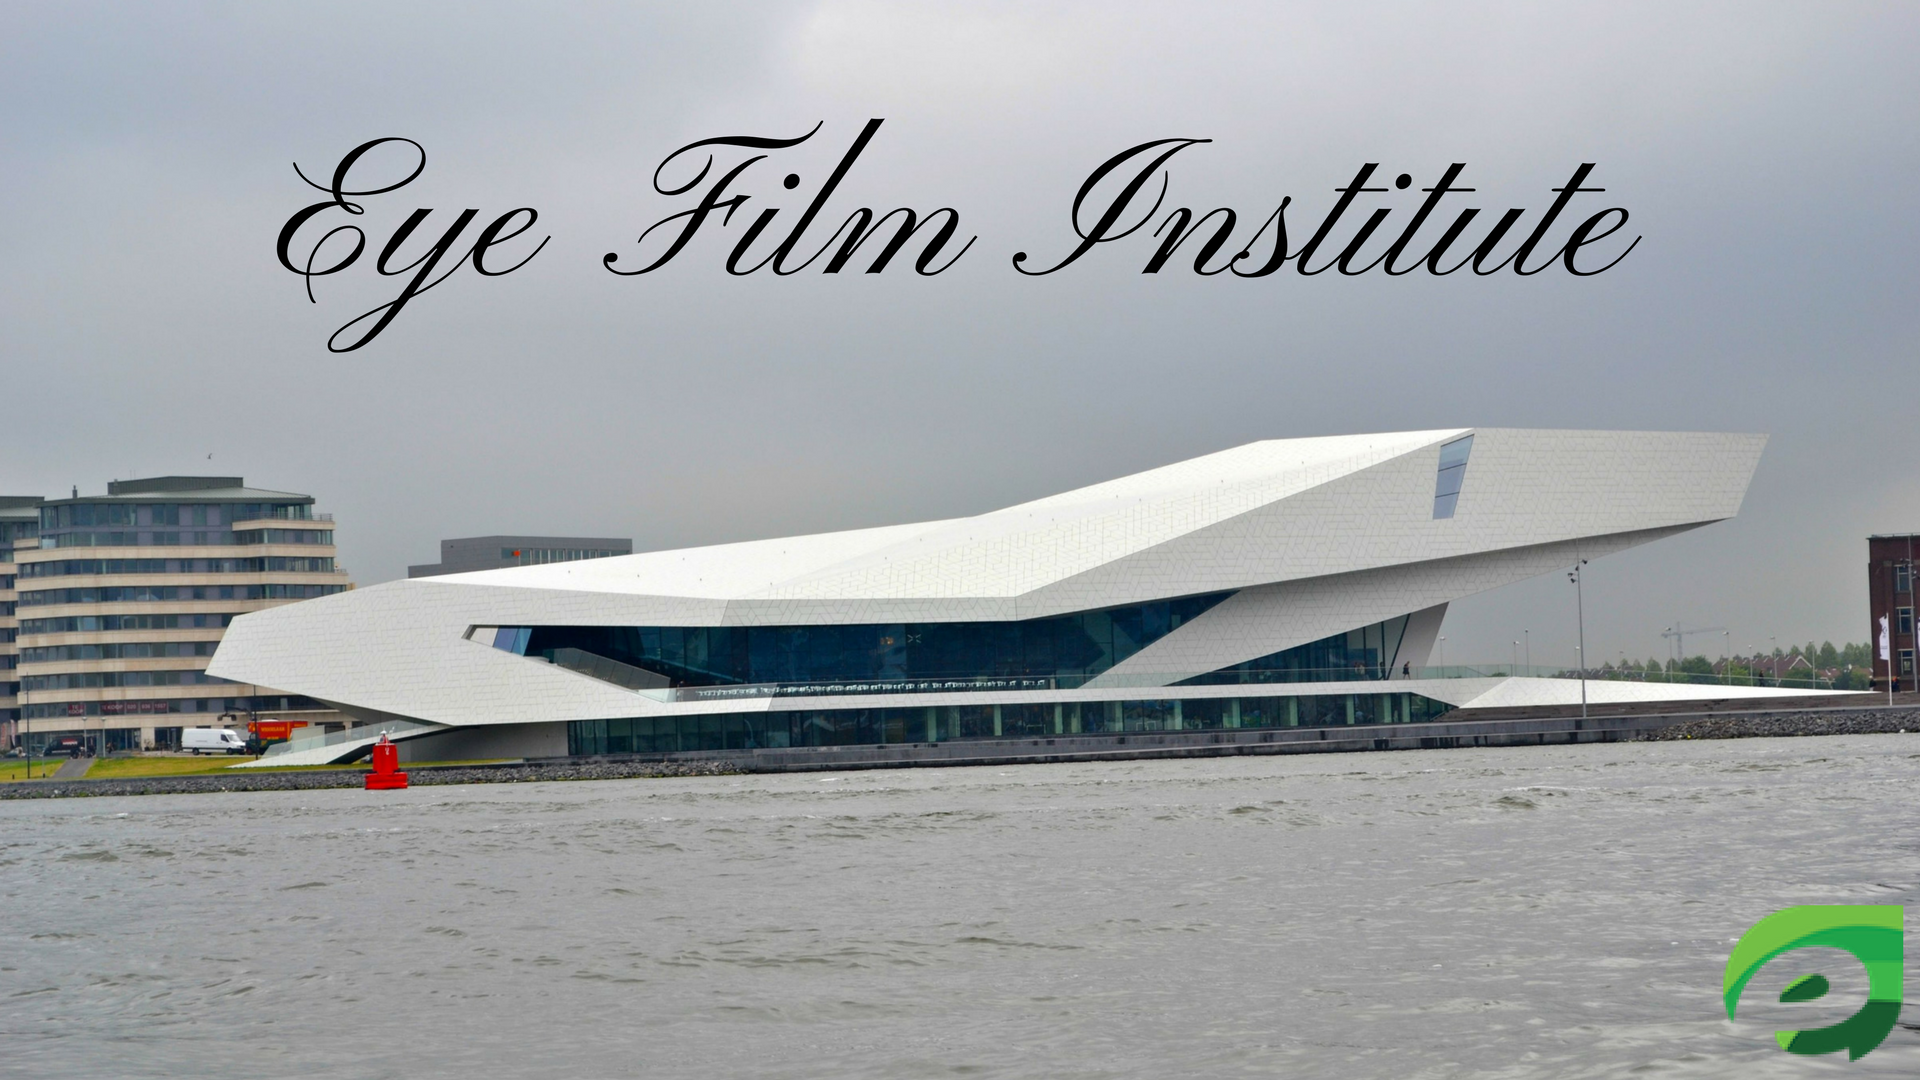 16 Places To Visit In Amsterdam- eye film institute